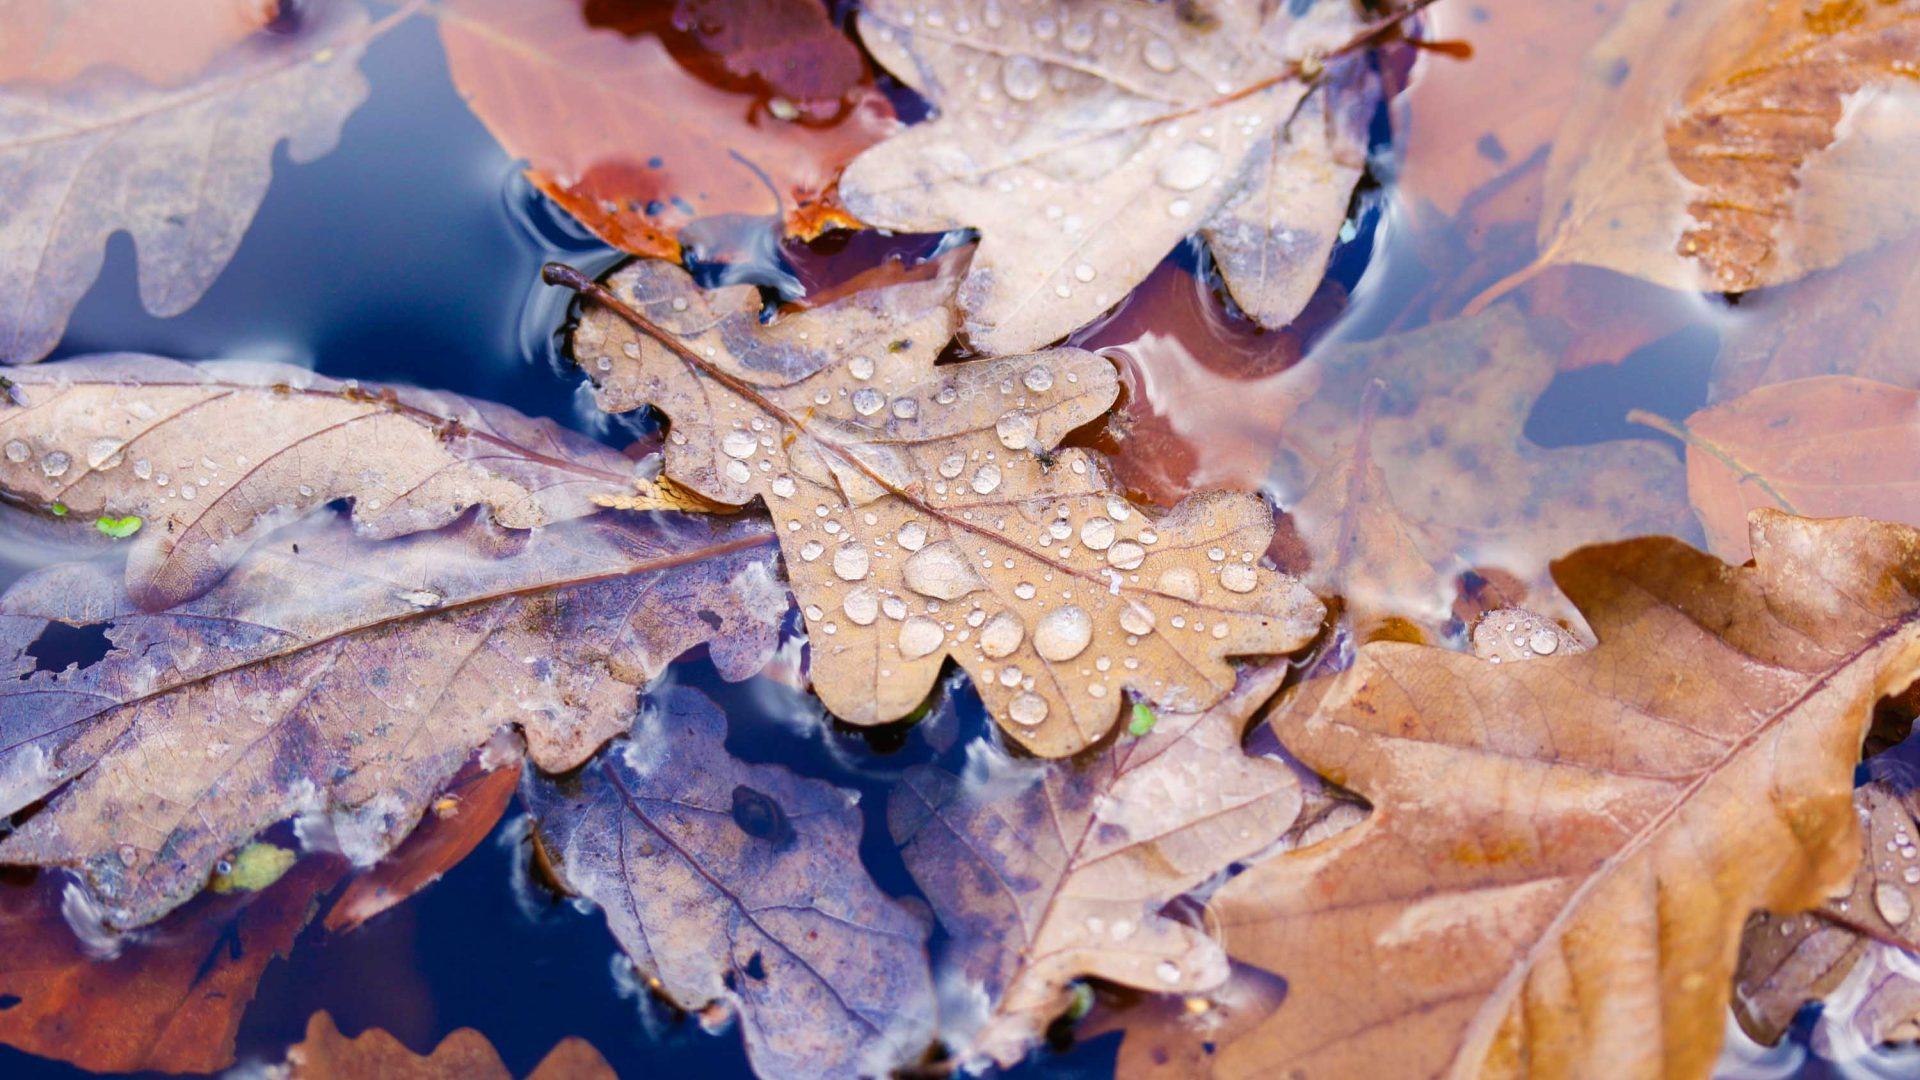 Leaves sprinkled with rain drops form a beautiful pattern.